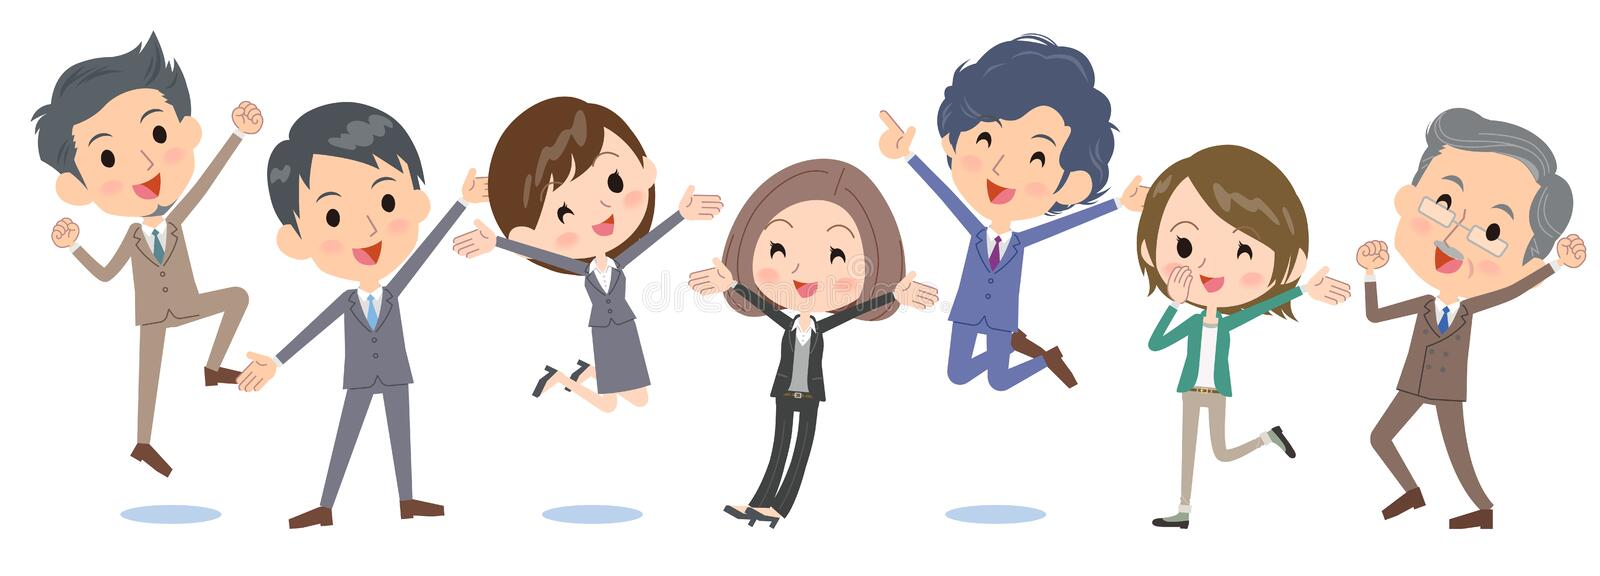 Business people_jump happy side by side royalty free illustration